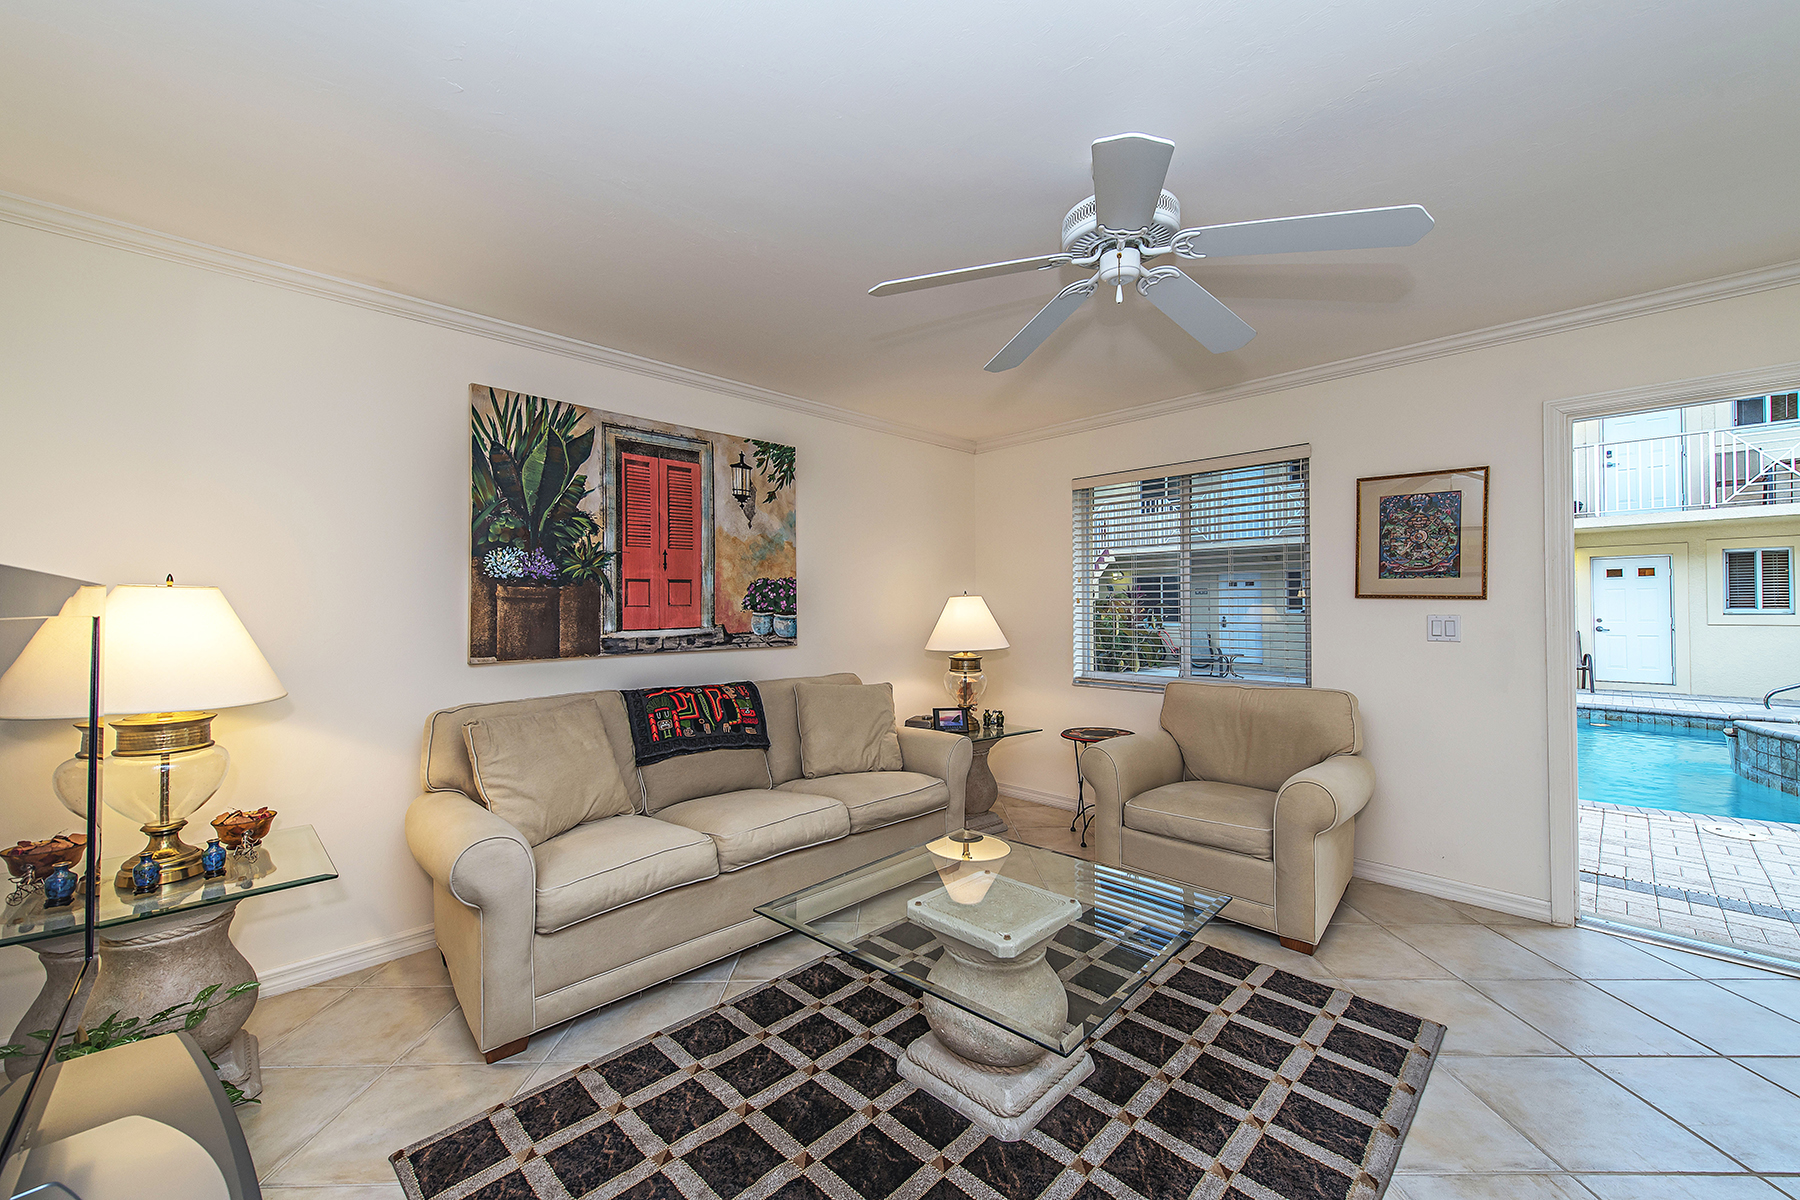 Condominium for Sale at KENSINGTON GARDENS 480 5th St S 102 Naples, Florida, 34102 United States